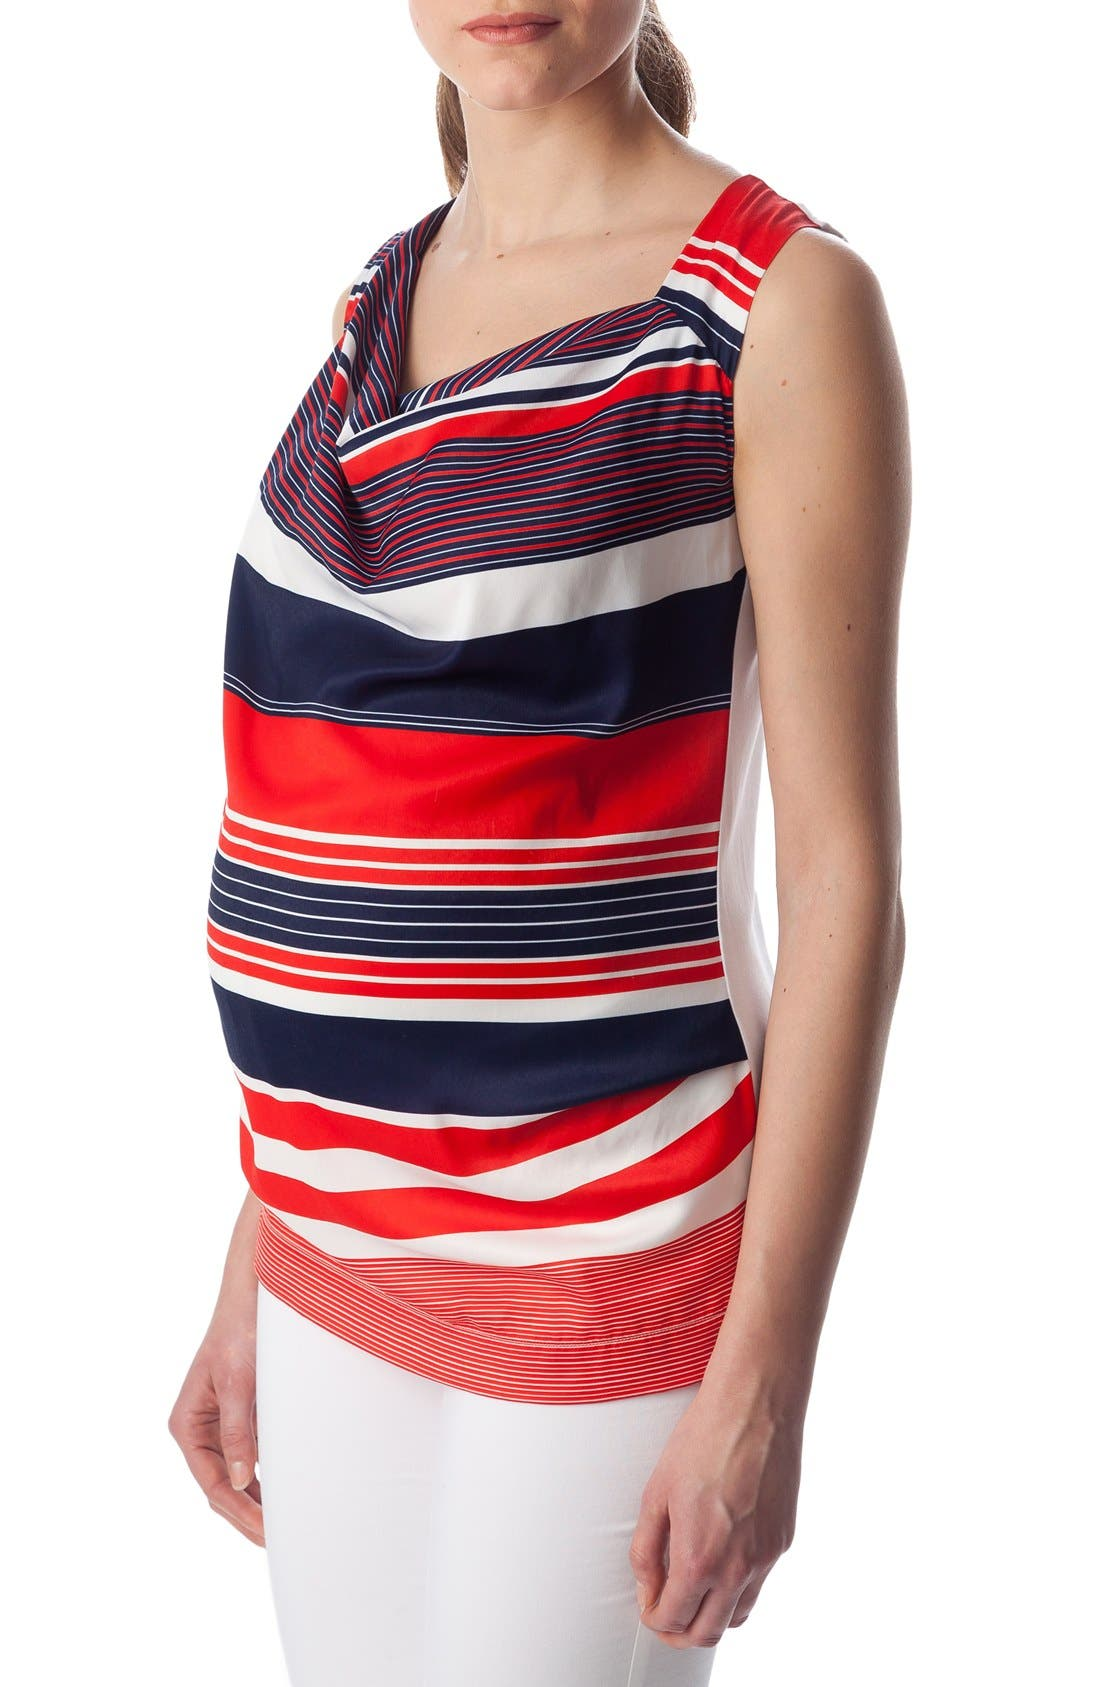 'Fialka' Maternity Top,                             Alternate thumbnail 3, color,                             RED/BLUE STRIPES